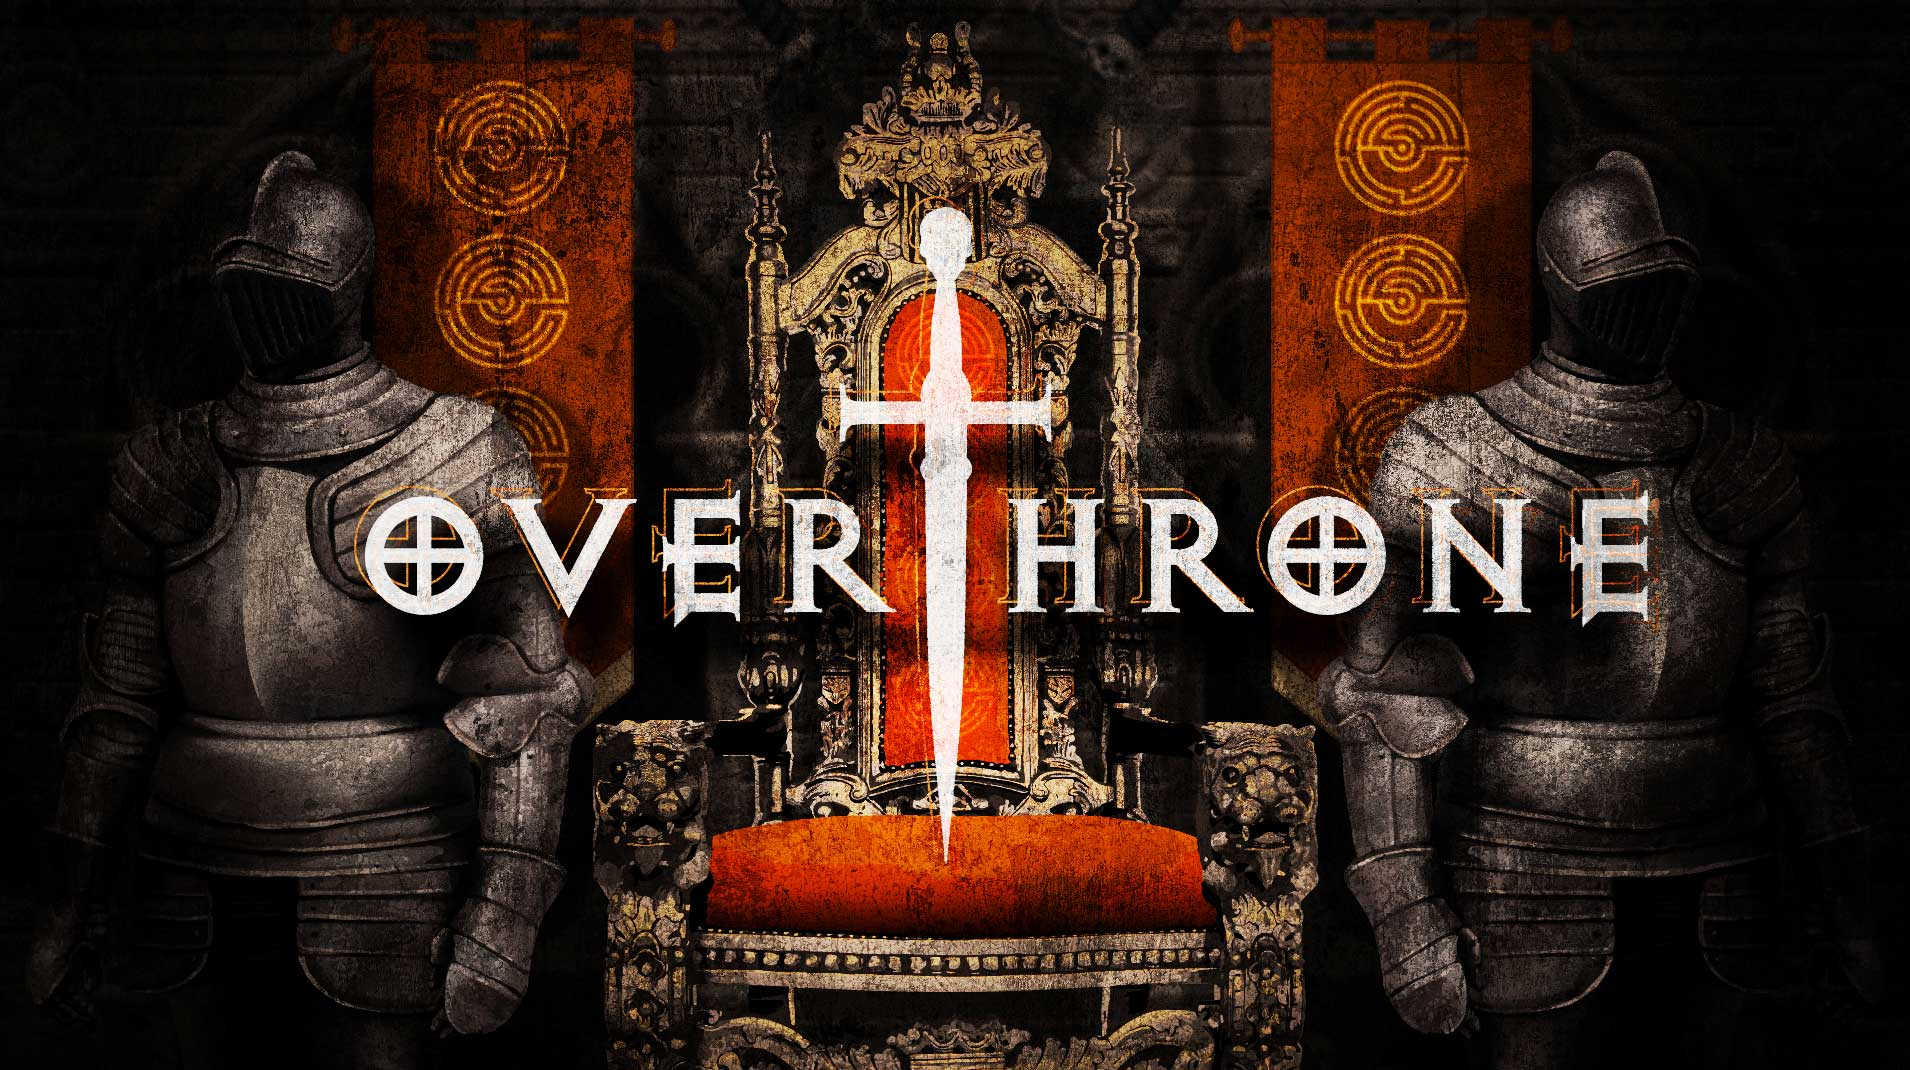 overthrone - The King is dead, long live the King!With no natural successor to the King the throne is up for grabs. Legend has it that the wily old King has hidden the sword within the castle. He who raises the legendary Sword of Britain will take the throne. You and your competitors are first onto the scene. You must explore the castle and retrieve the legendary sword before the pretenders get it, to become new King or Queen!